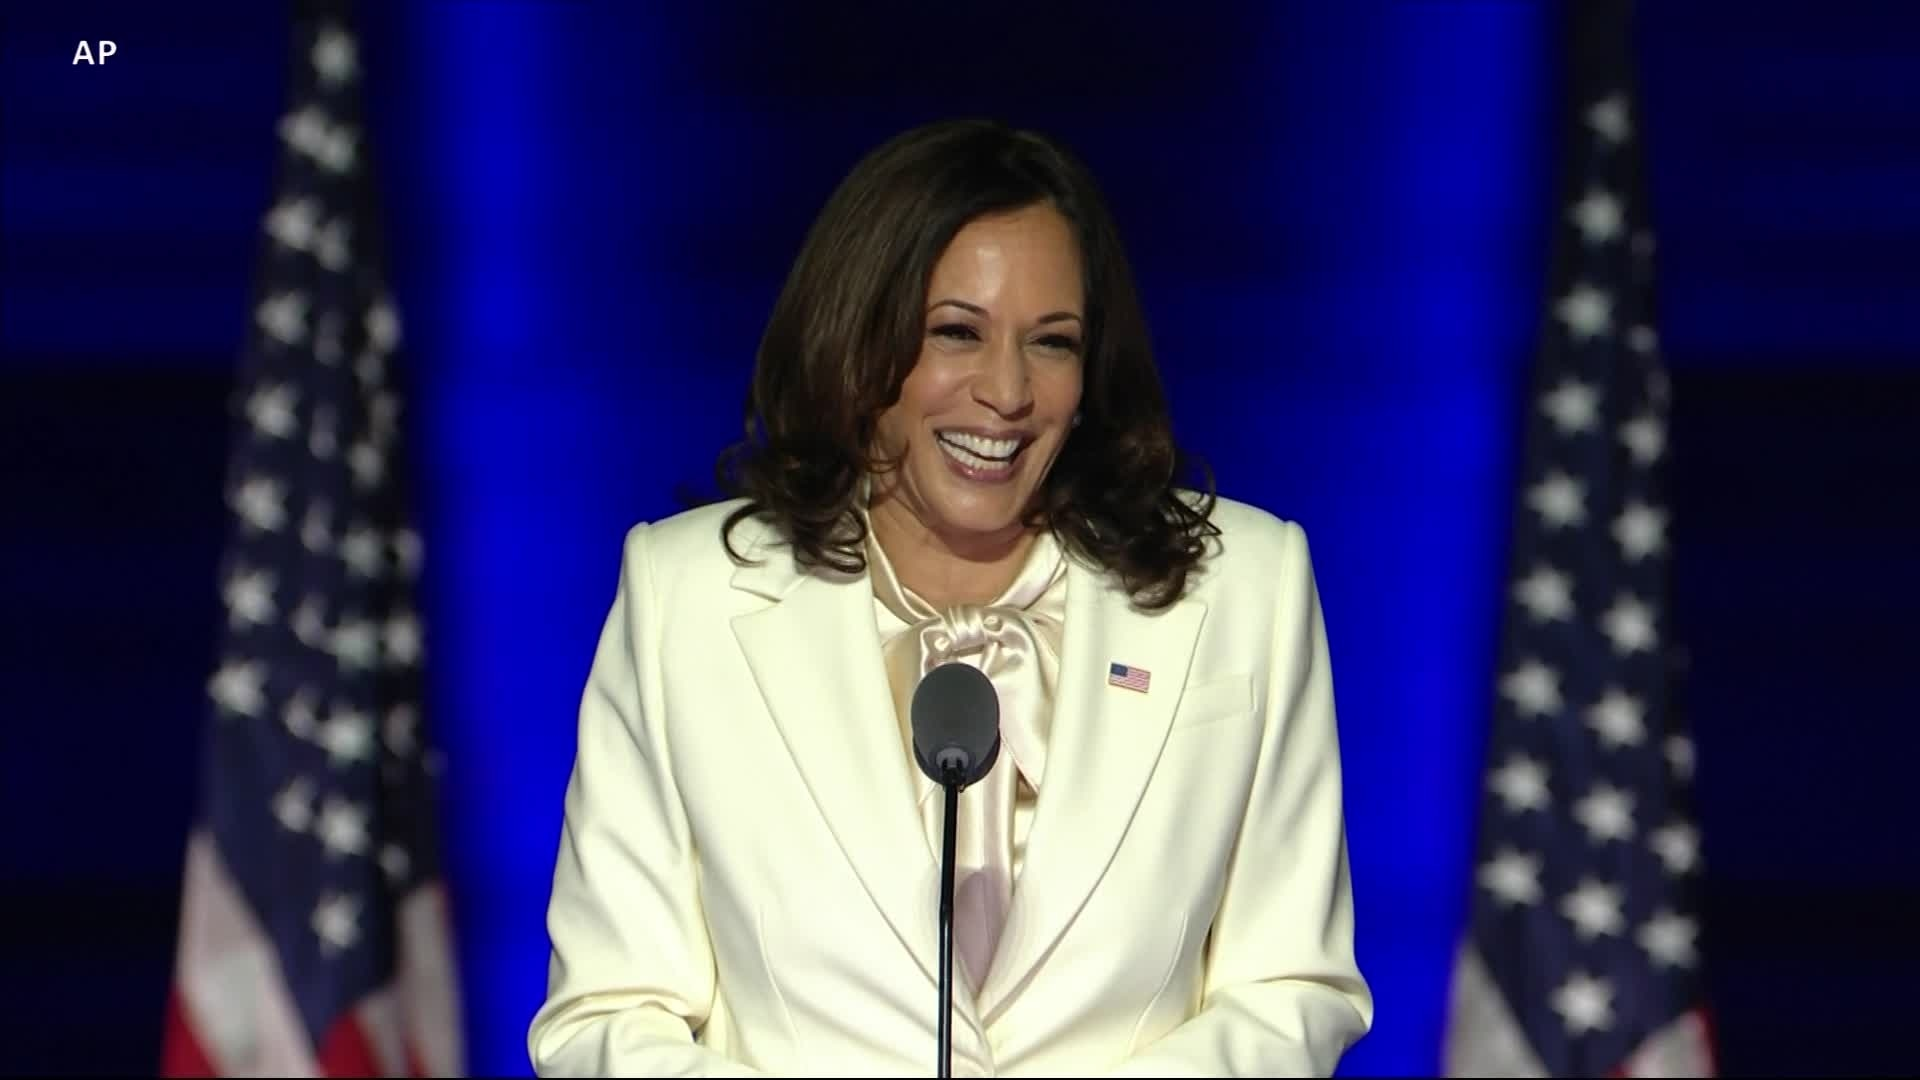 Vice President-elect Kamala Harris Victory Rally Speech